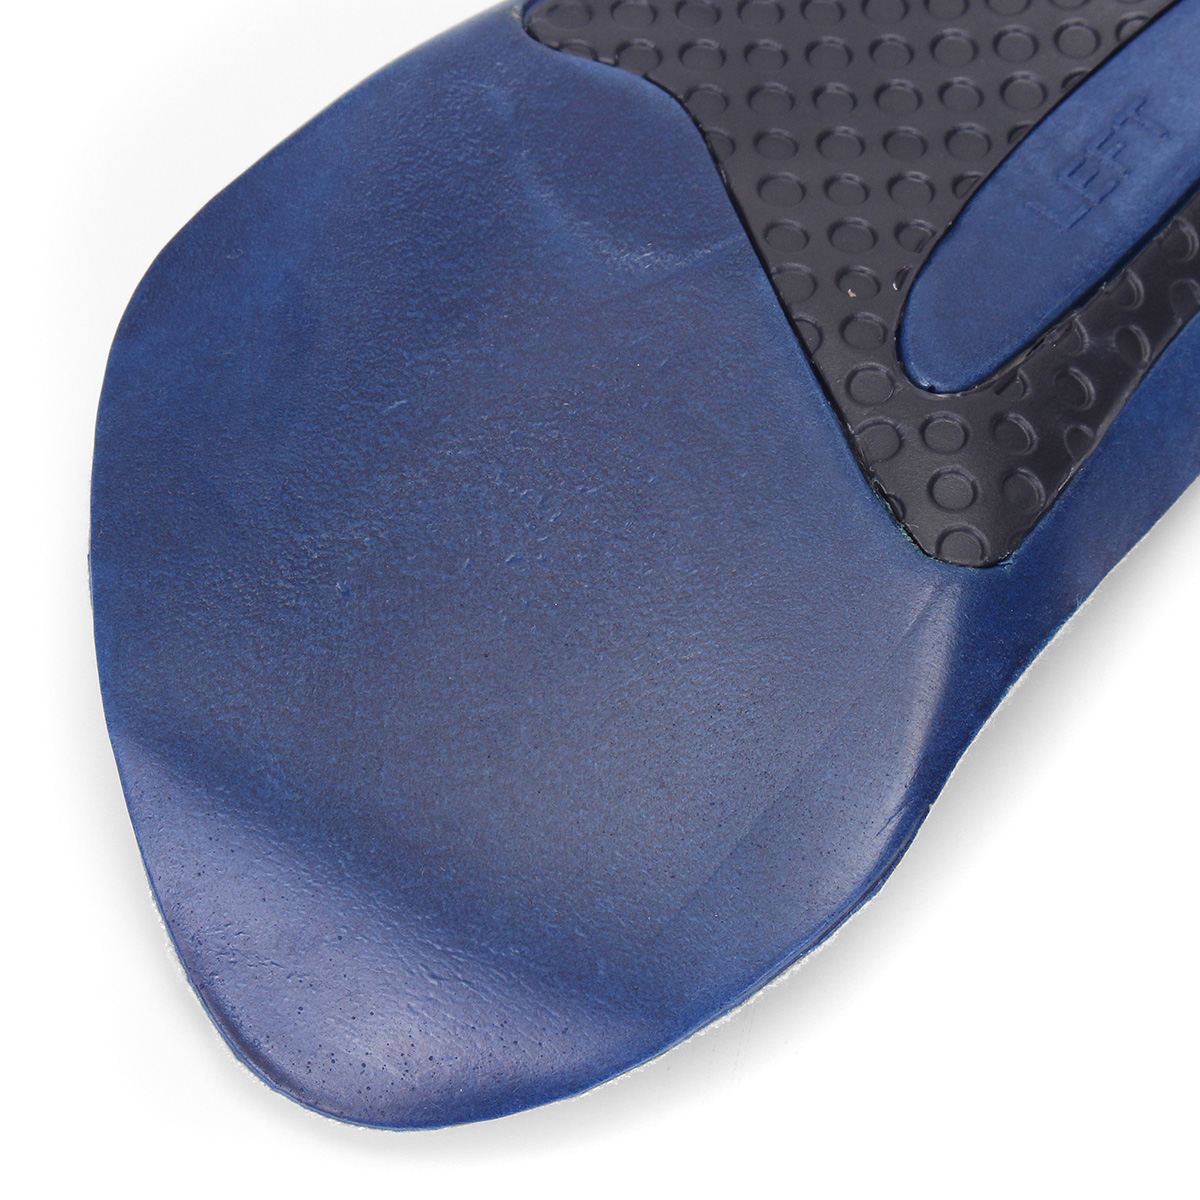 3/4 Arch Support Orthotic Insoles Plantar Fasciitis Pain Relief Foot Pad Cushion